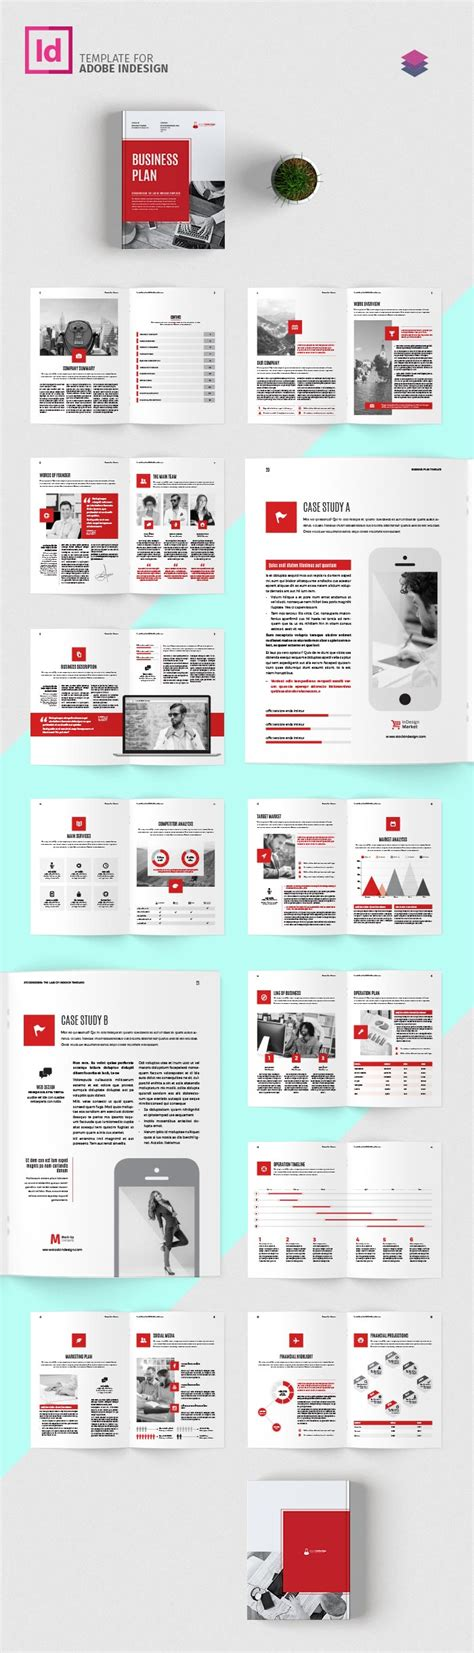 templates agenda indesign business plan template adobe indesign templates